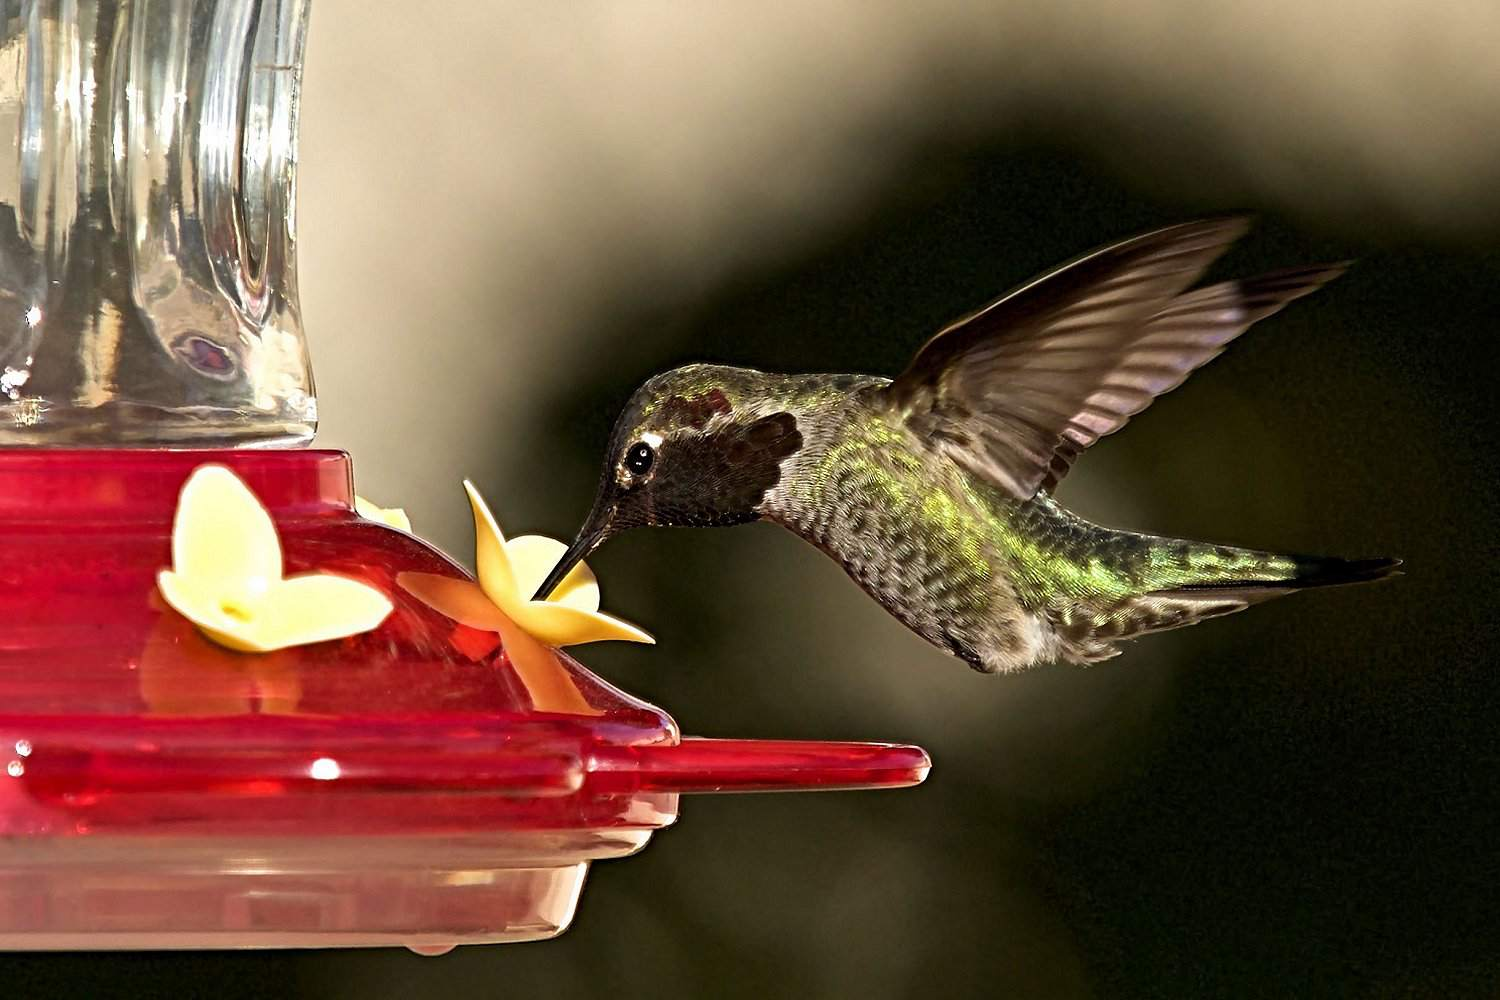 Broad-Tailed Hummingbird Sipping Nectar